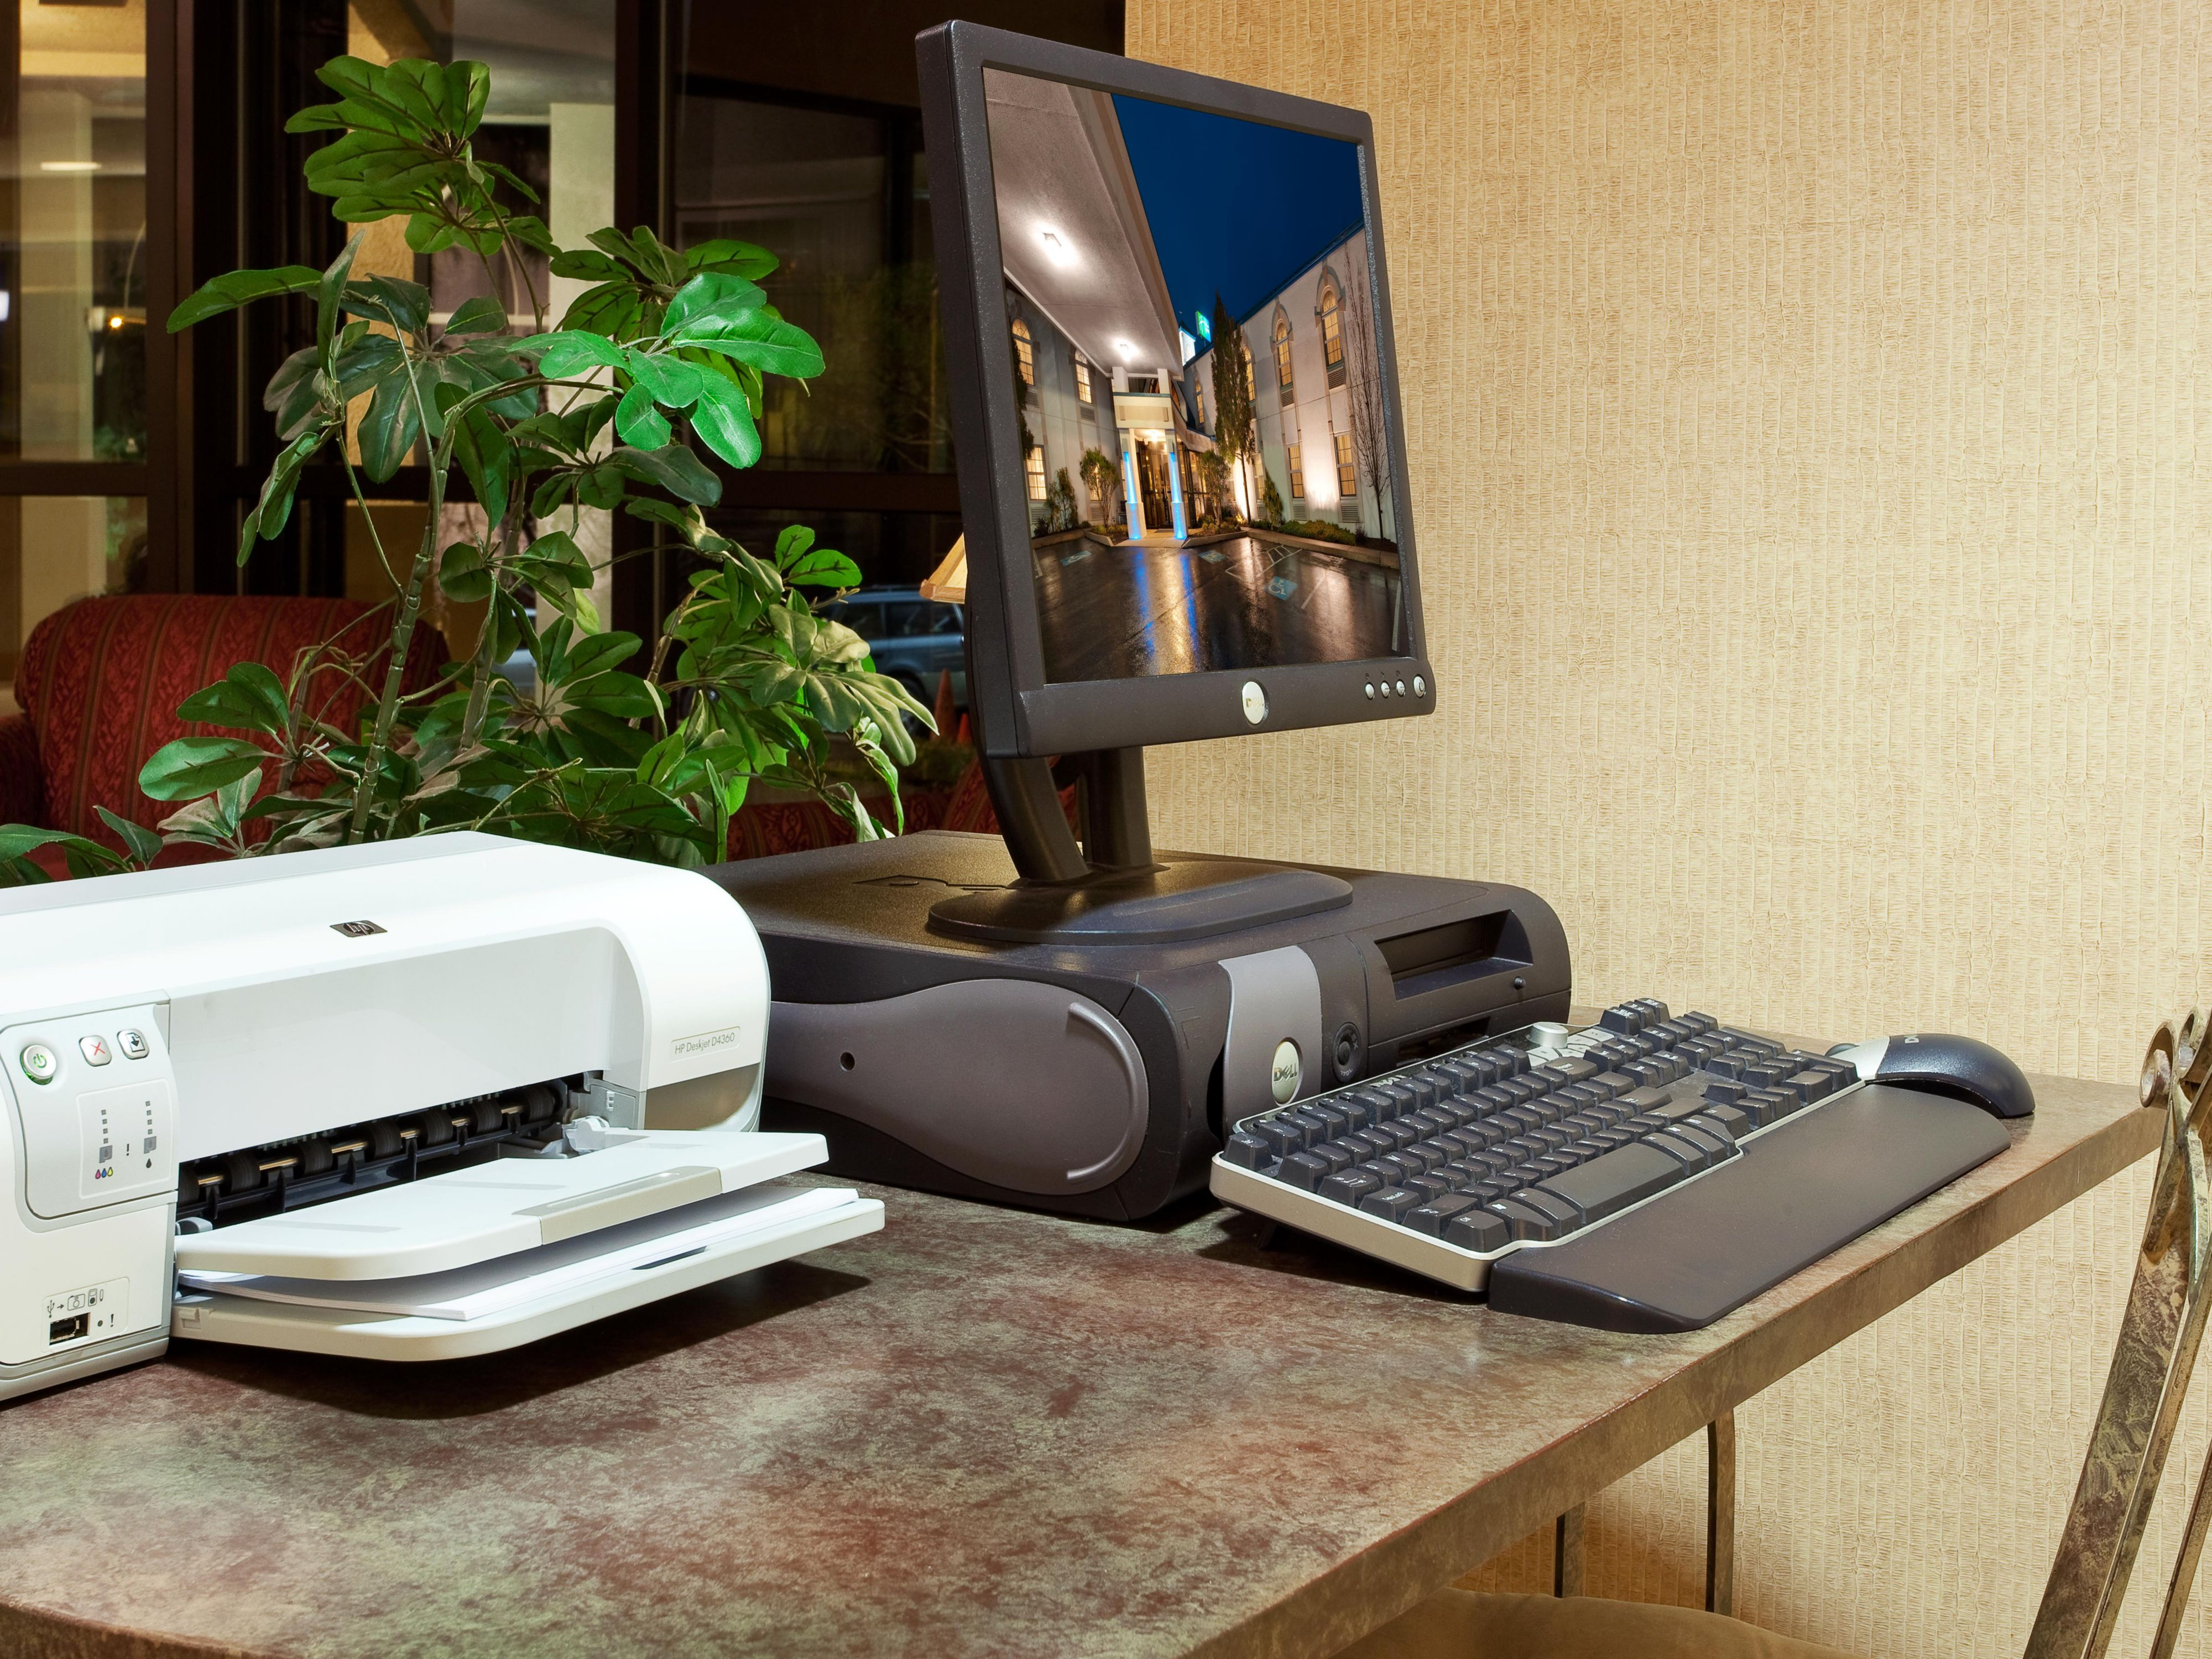 Enjoy free use of a computer and printer in our lobby!